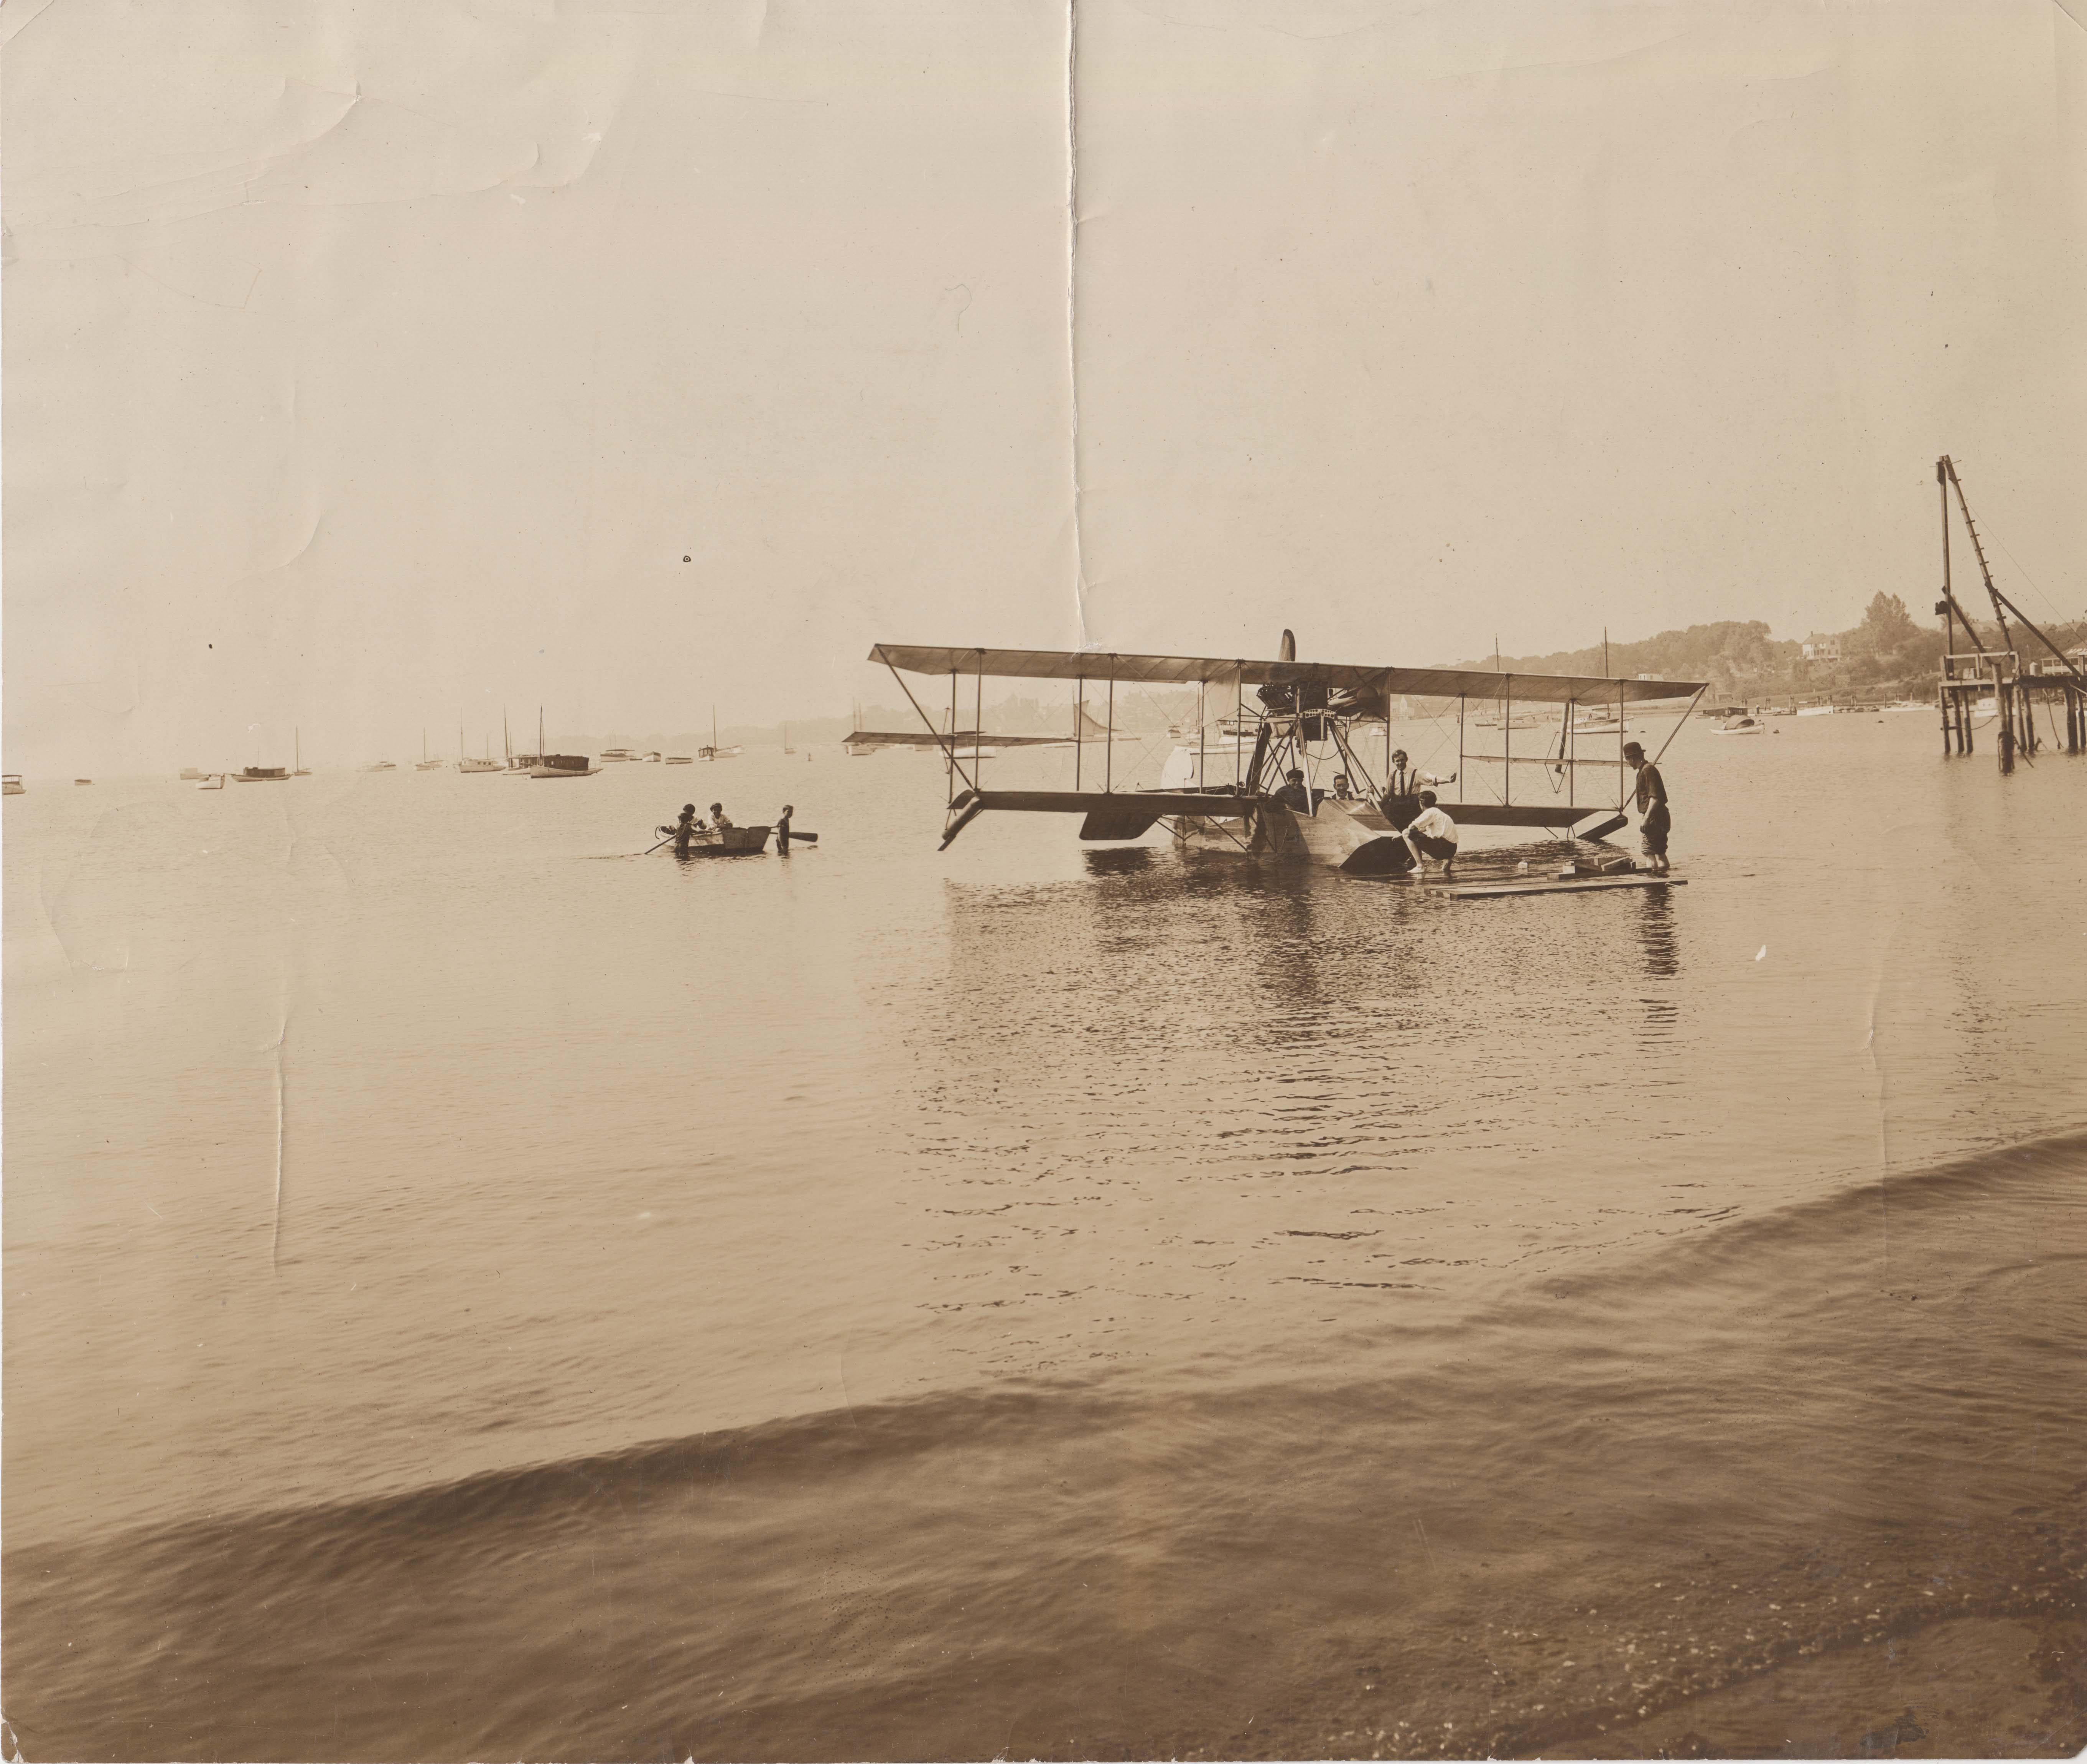 0239A Plane in Water at Beach